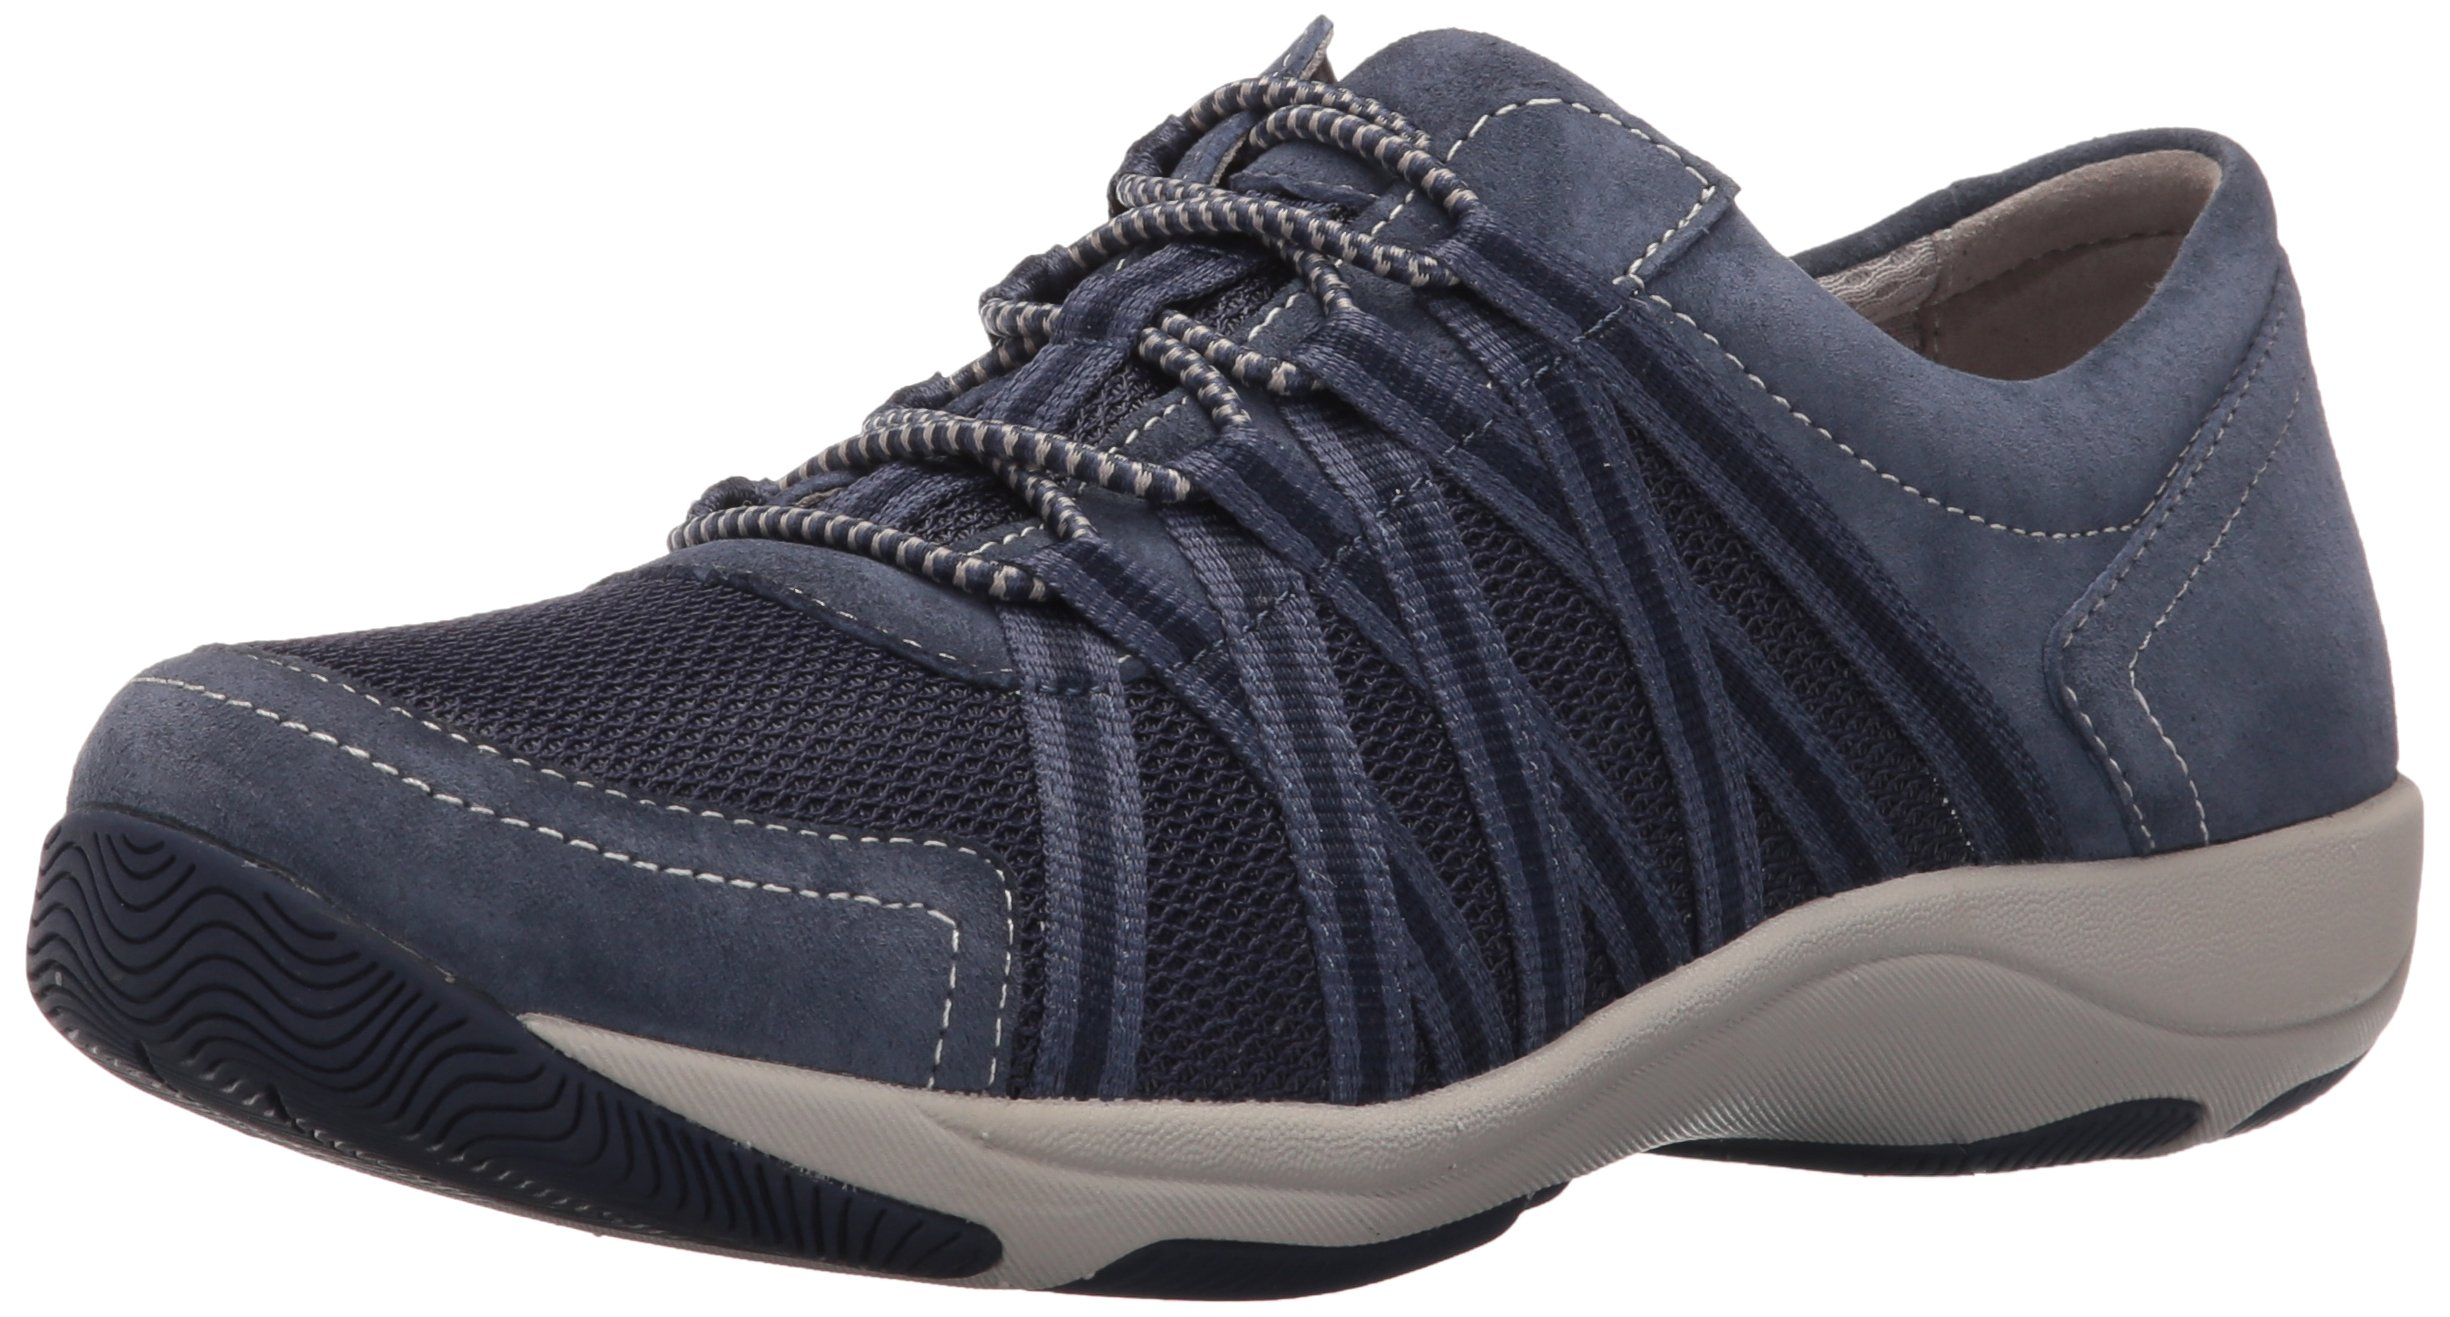 Dansko Women's Honor Sneaker, Blue Suede, 36 EU/5.5-6 M US